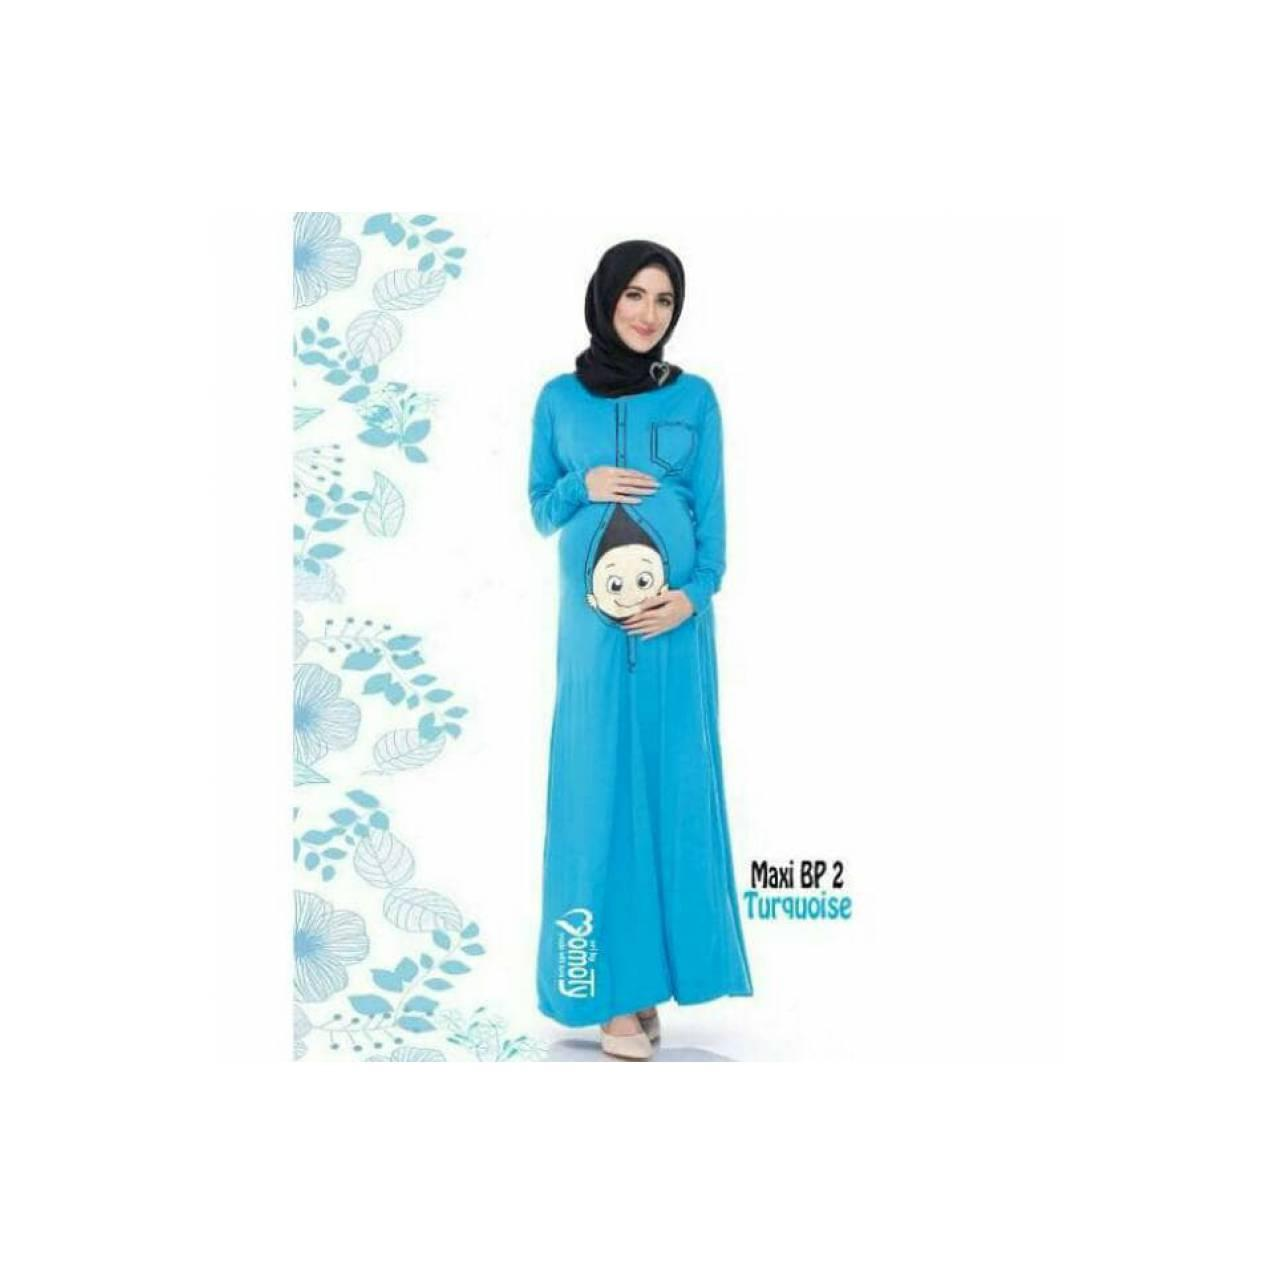 Eksklusif!! Baju ibu hamil model maxi dress BP2/ gamis / long Limited